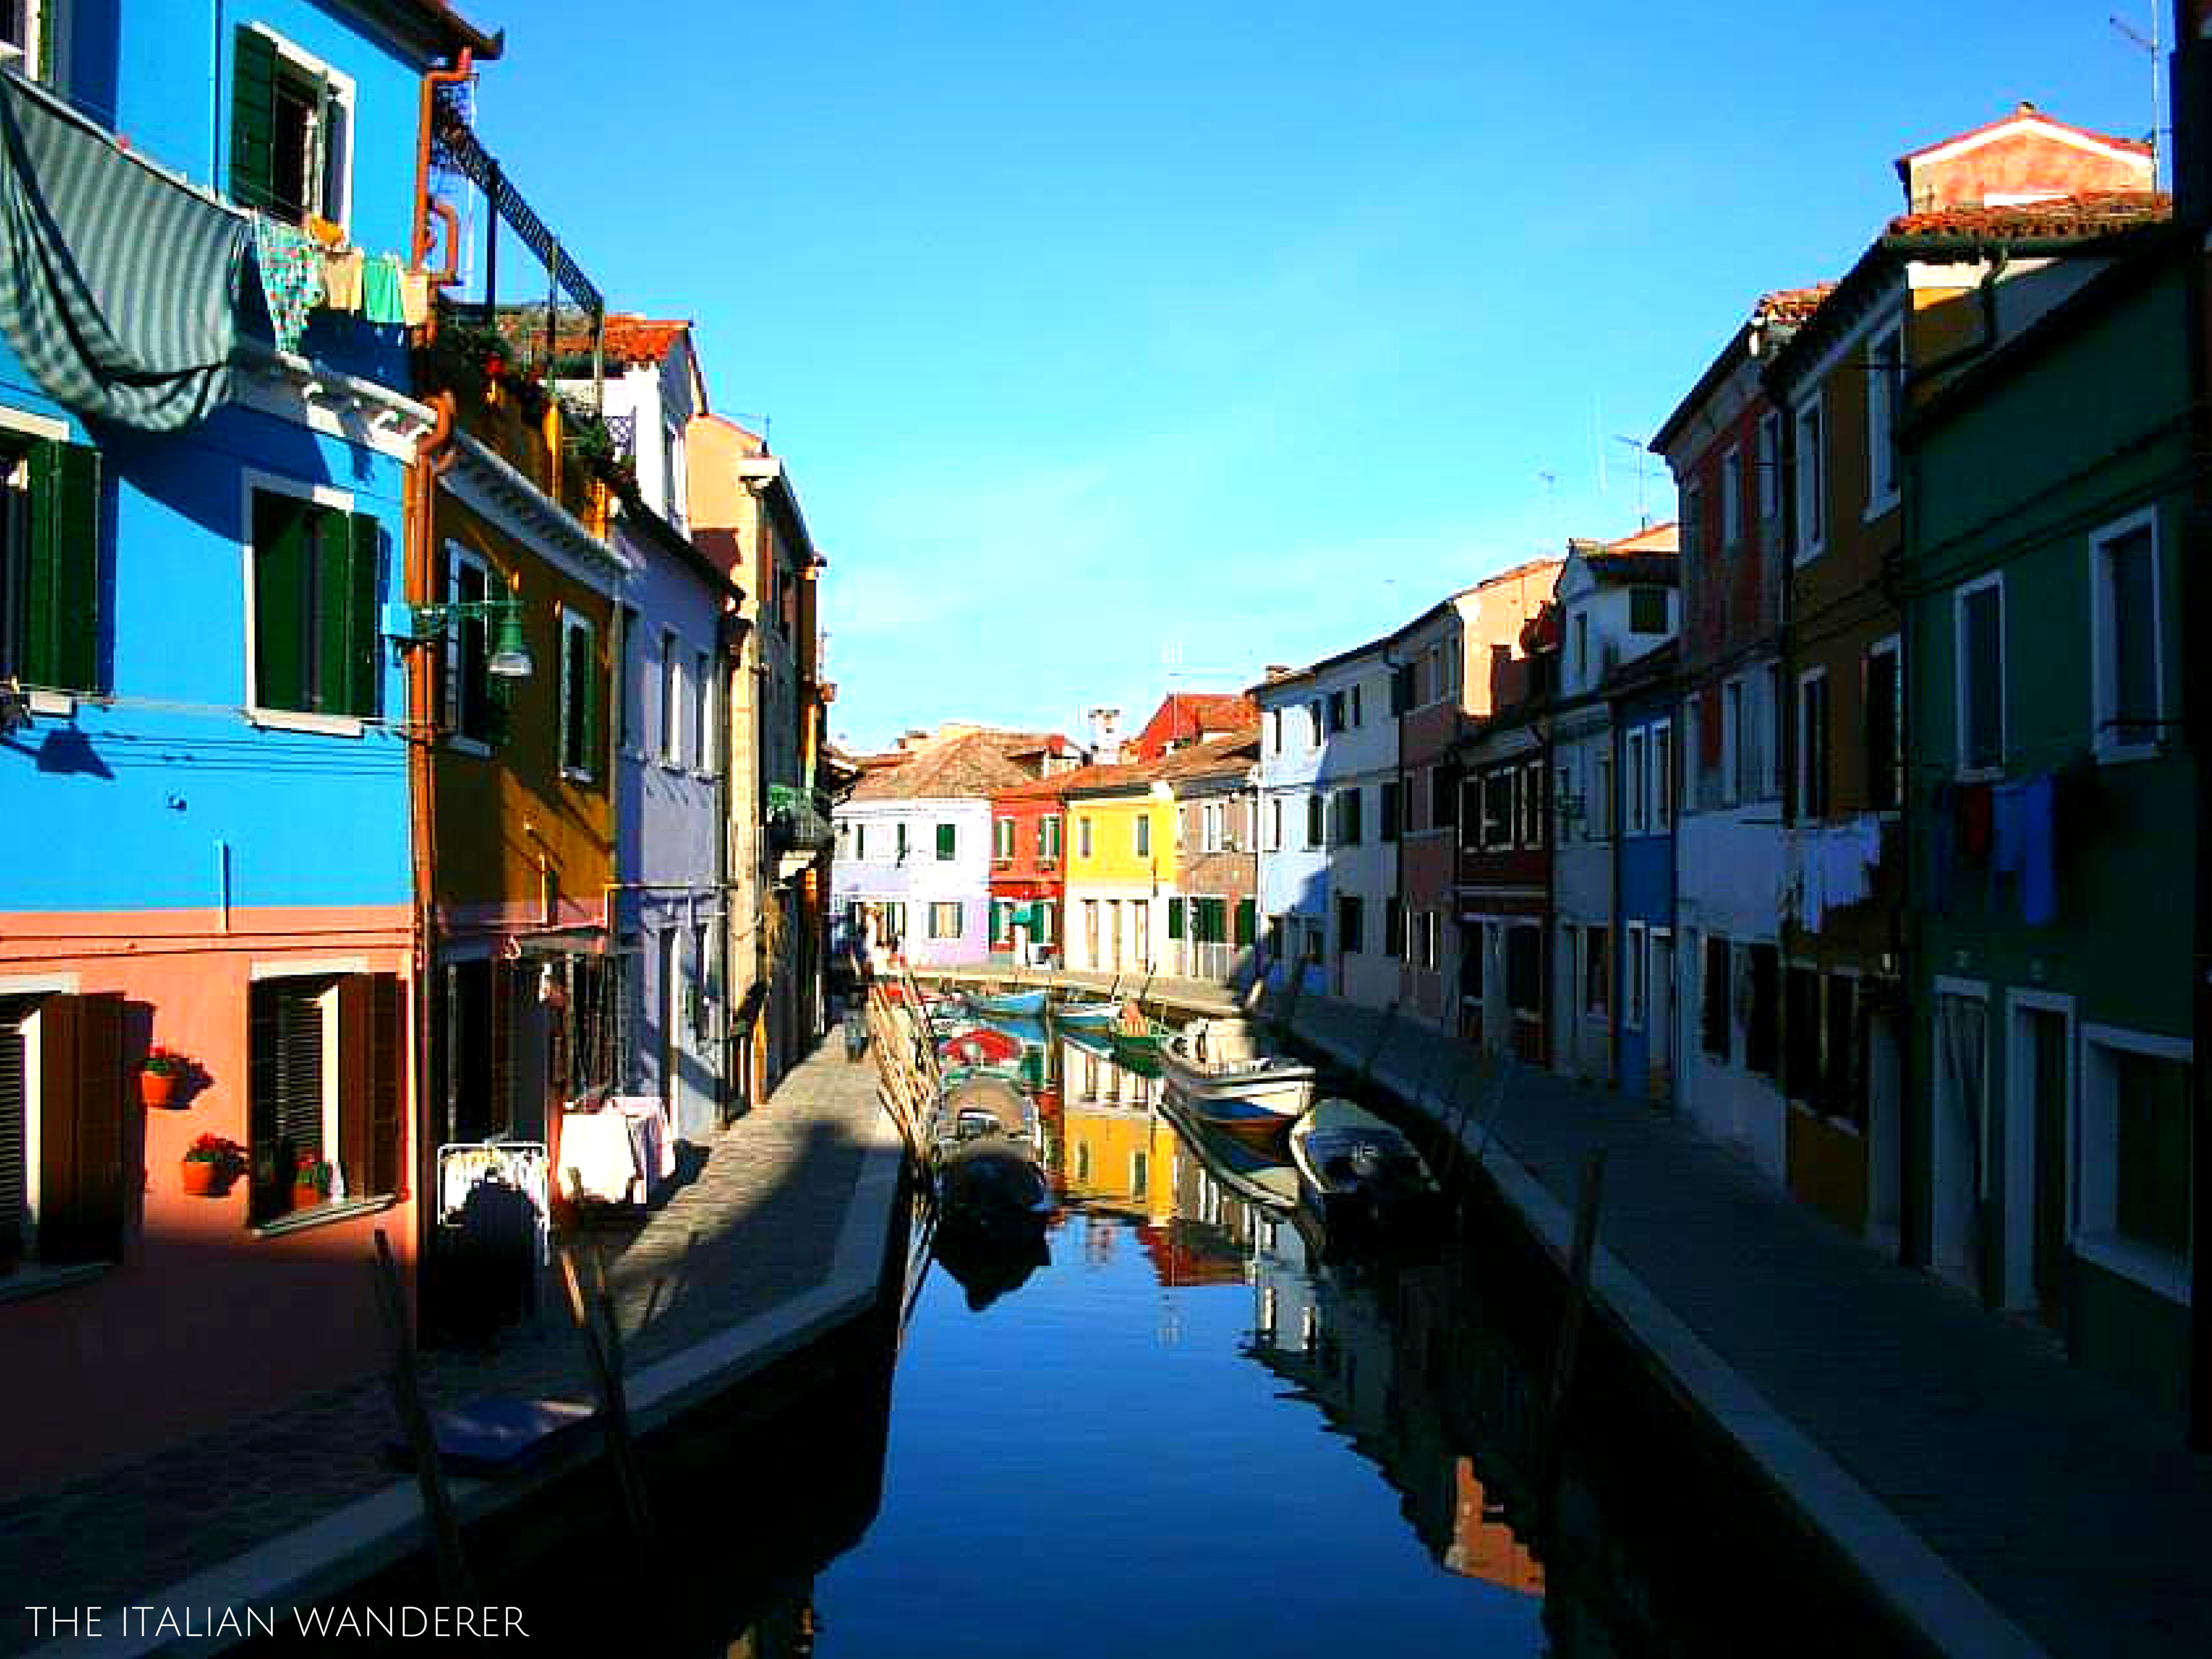 Burano and its colored houses